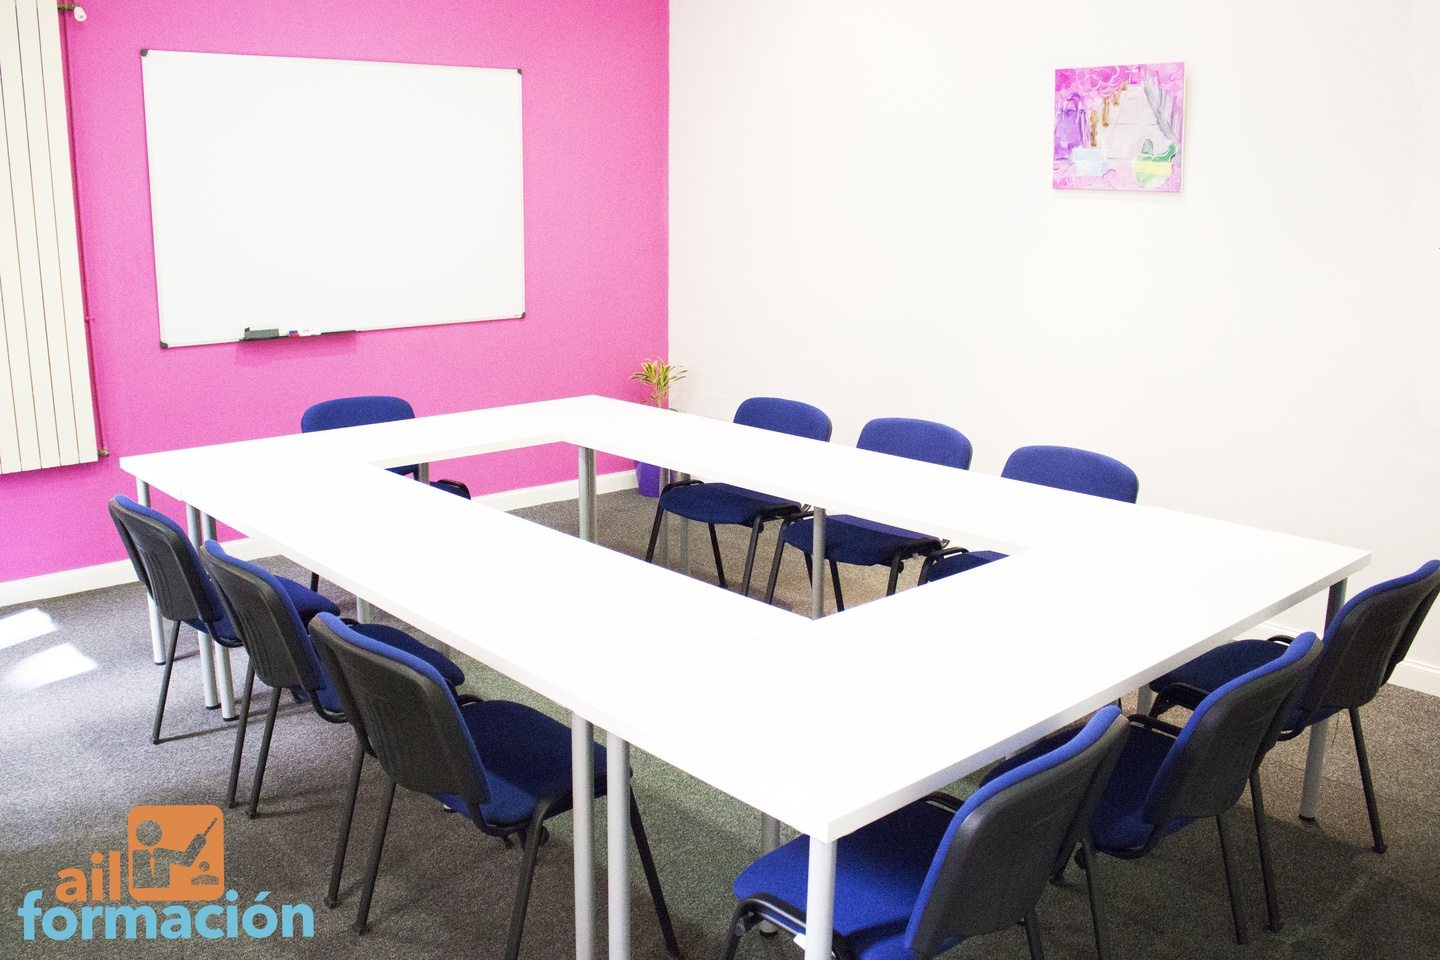 Madrid training rooms Meeting room AIL Formación - Serrano image 1